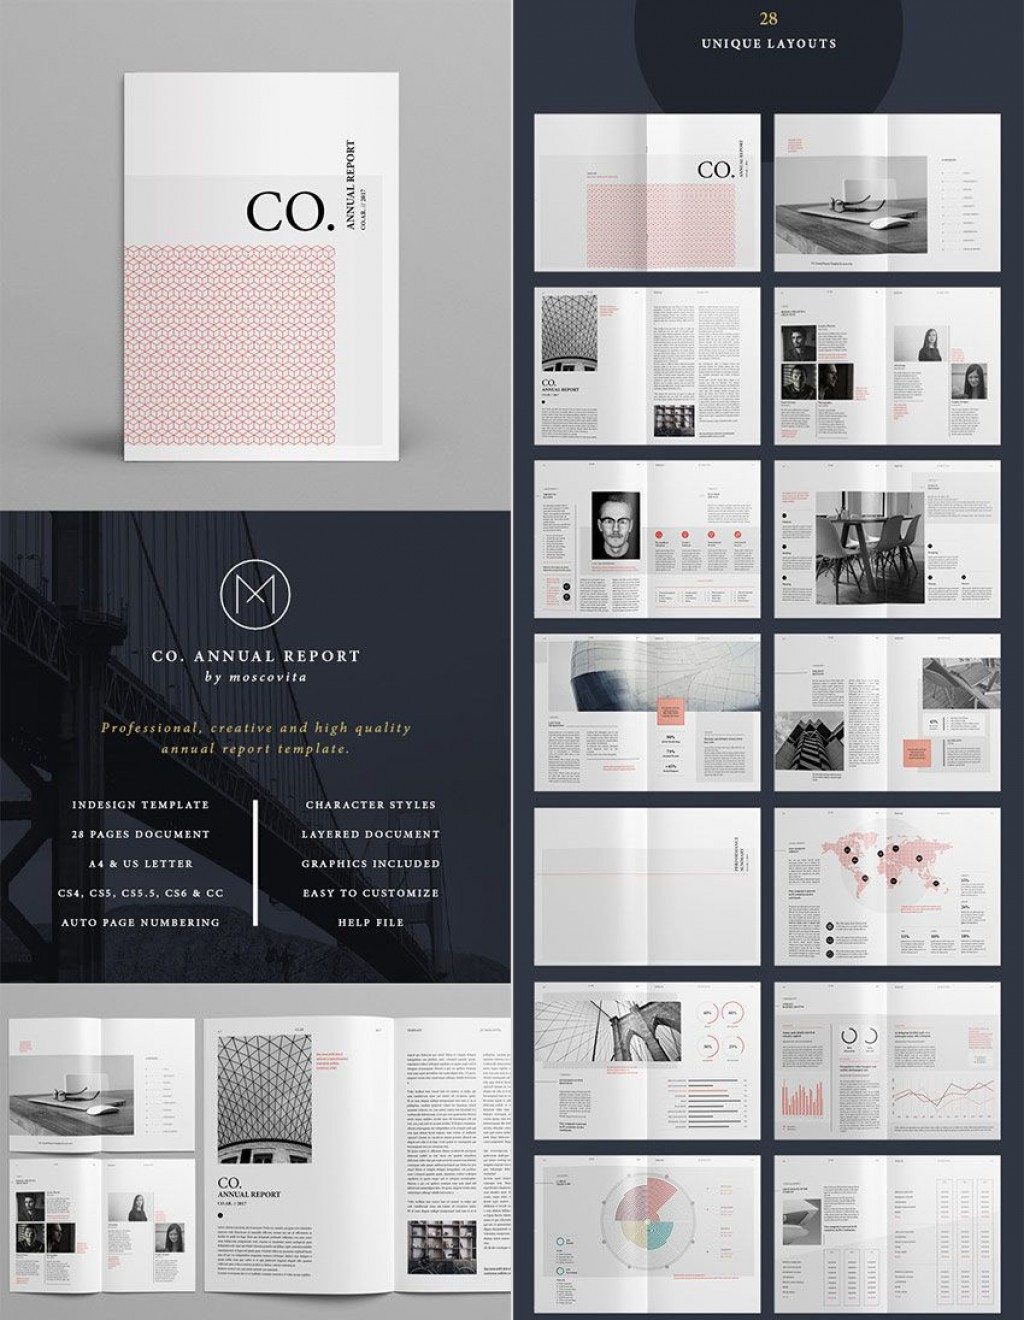 007 Fascinating Annual Report Design Template Indesign Highest Clarity  Free DownloadLarge